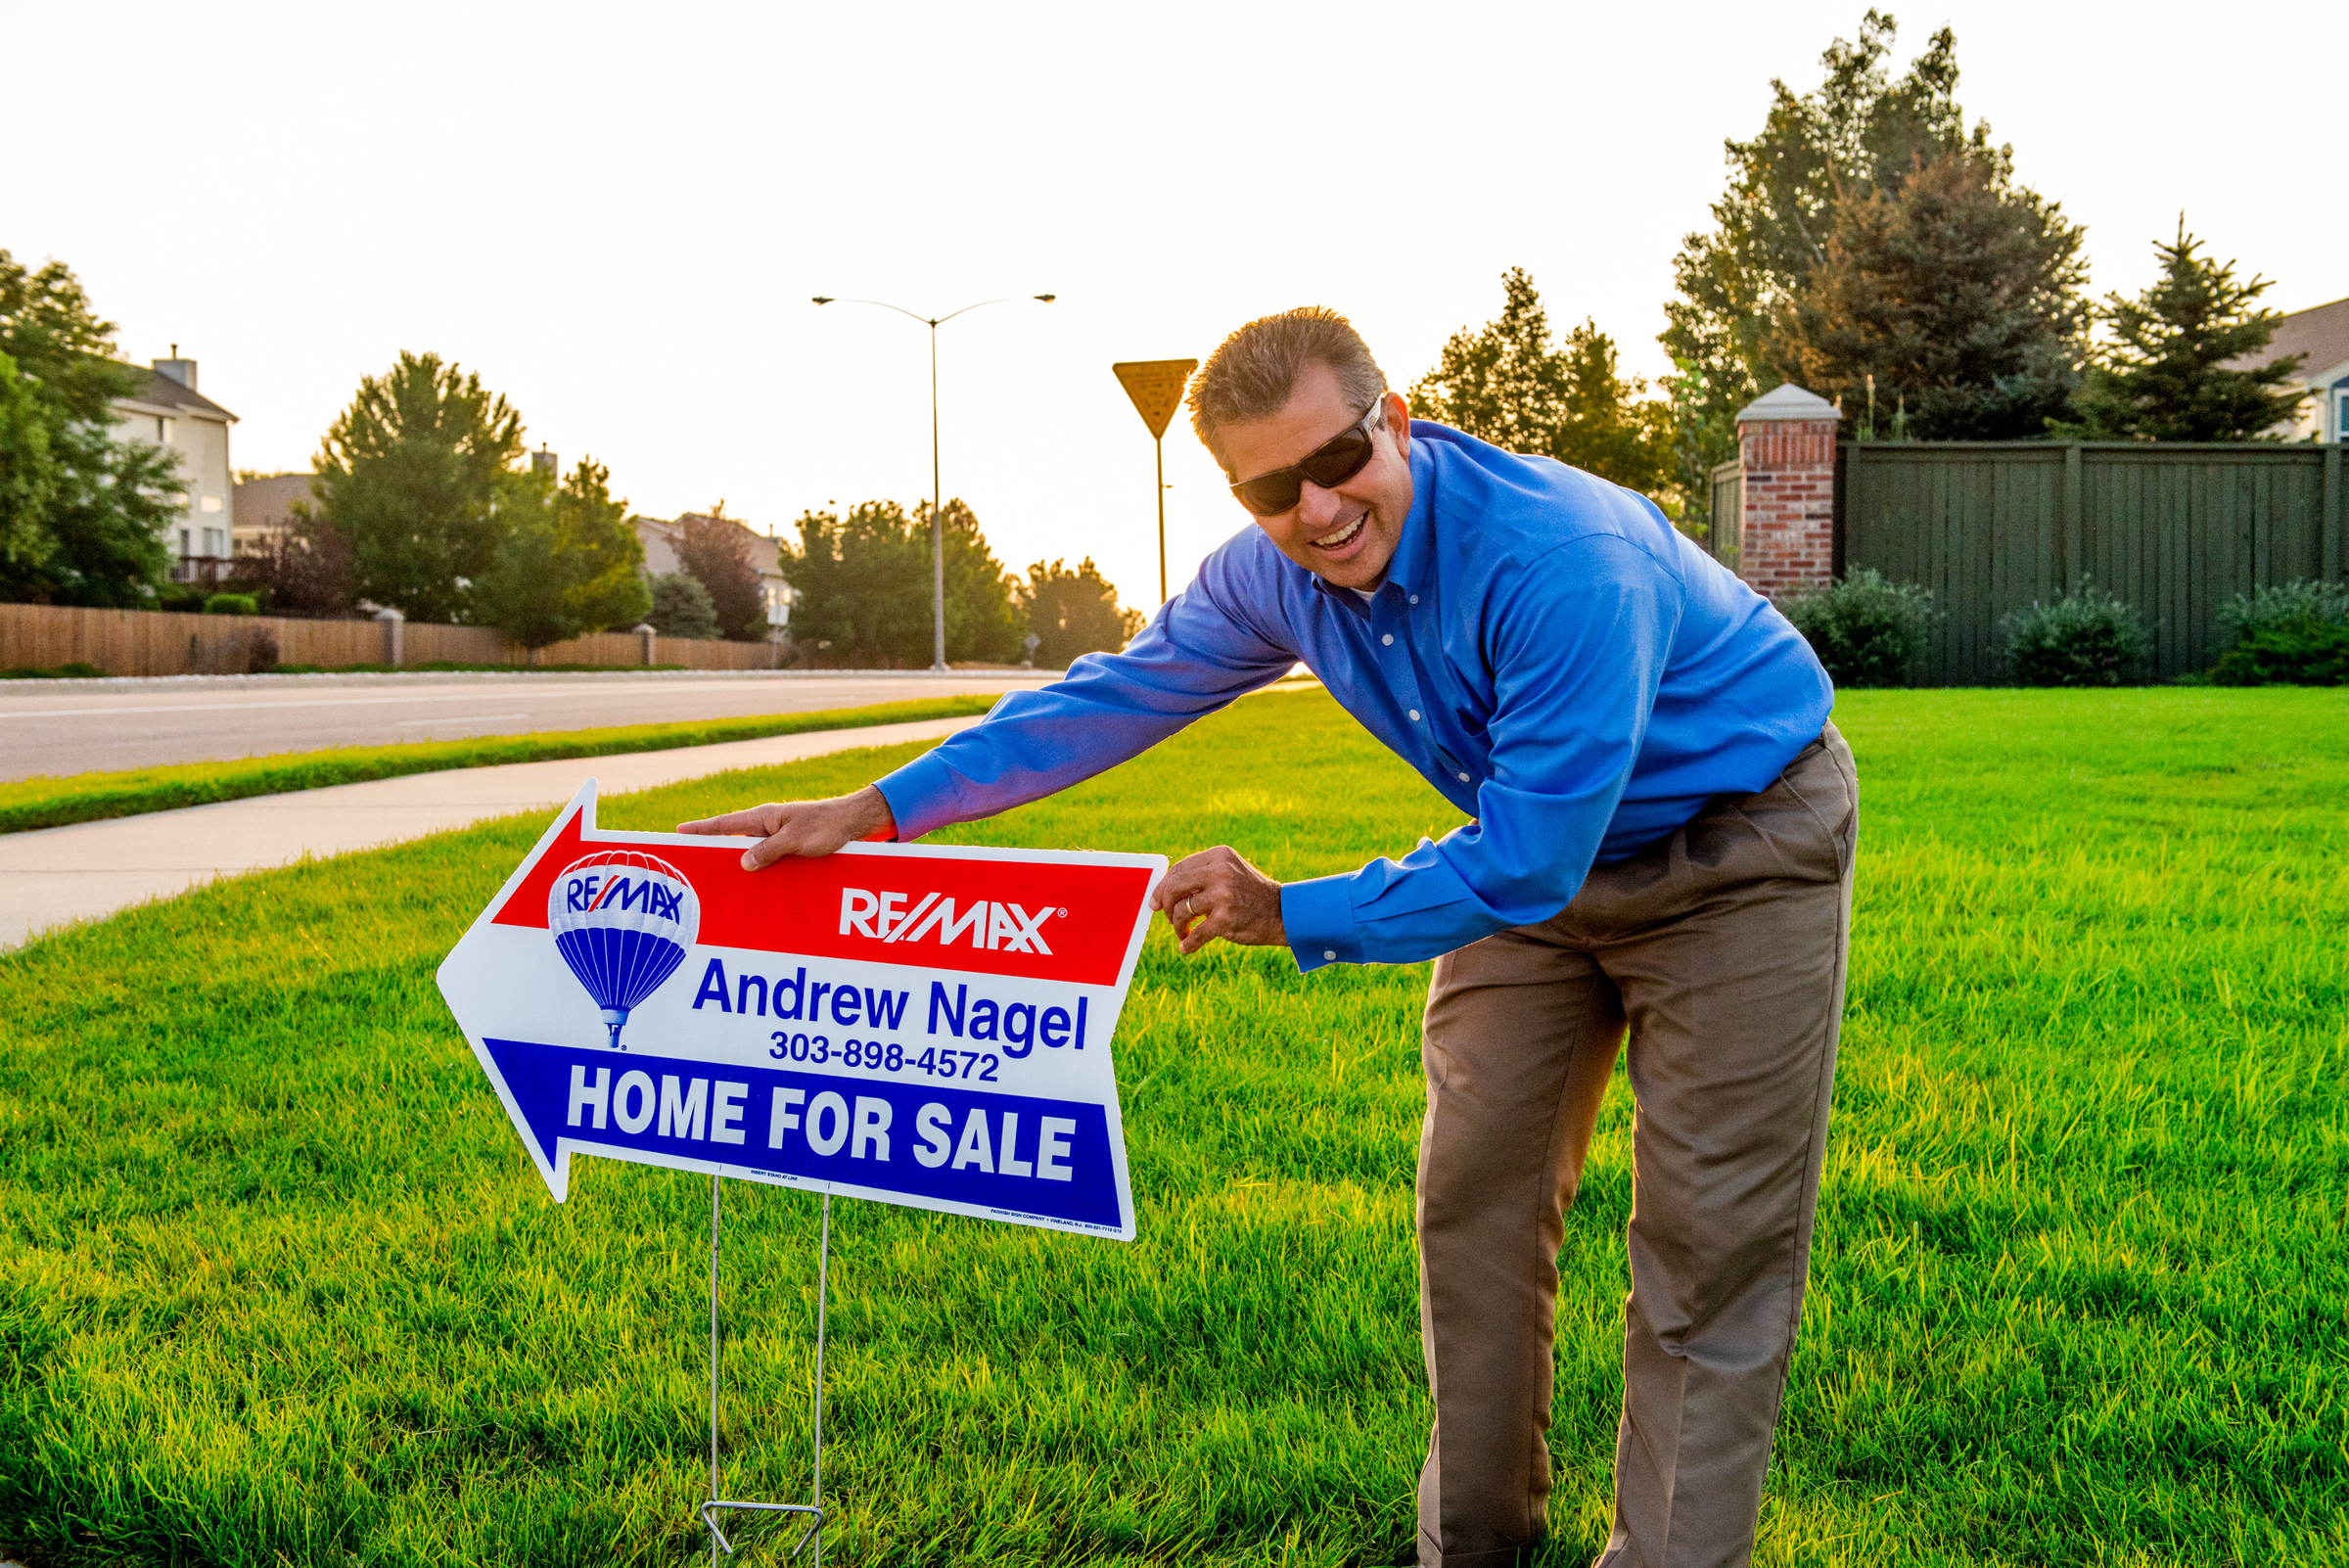 Andrew Nagel putting out Remax directional signs.